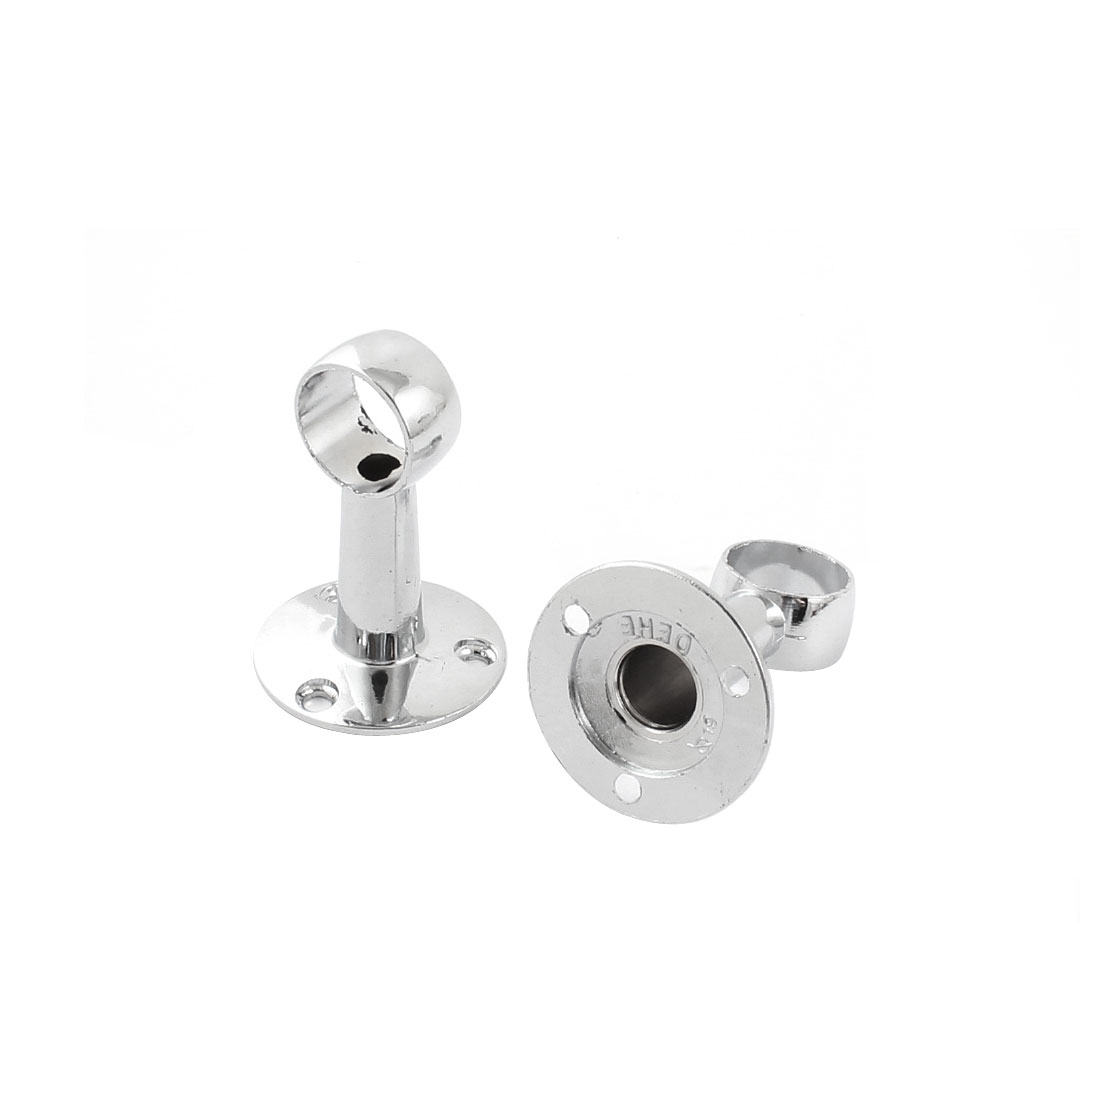 Towel Clothes Hang Bar 20mm Dia Flanged Socket Silver Tone 2 Pcs